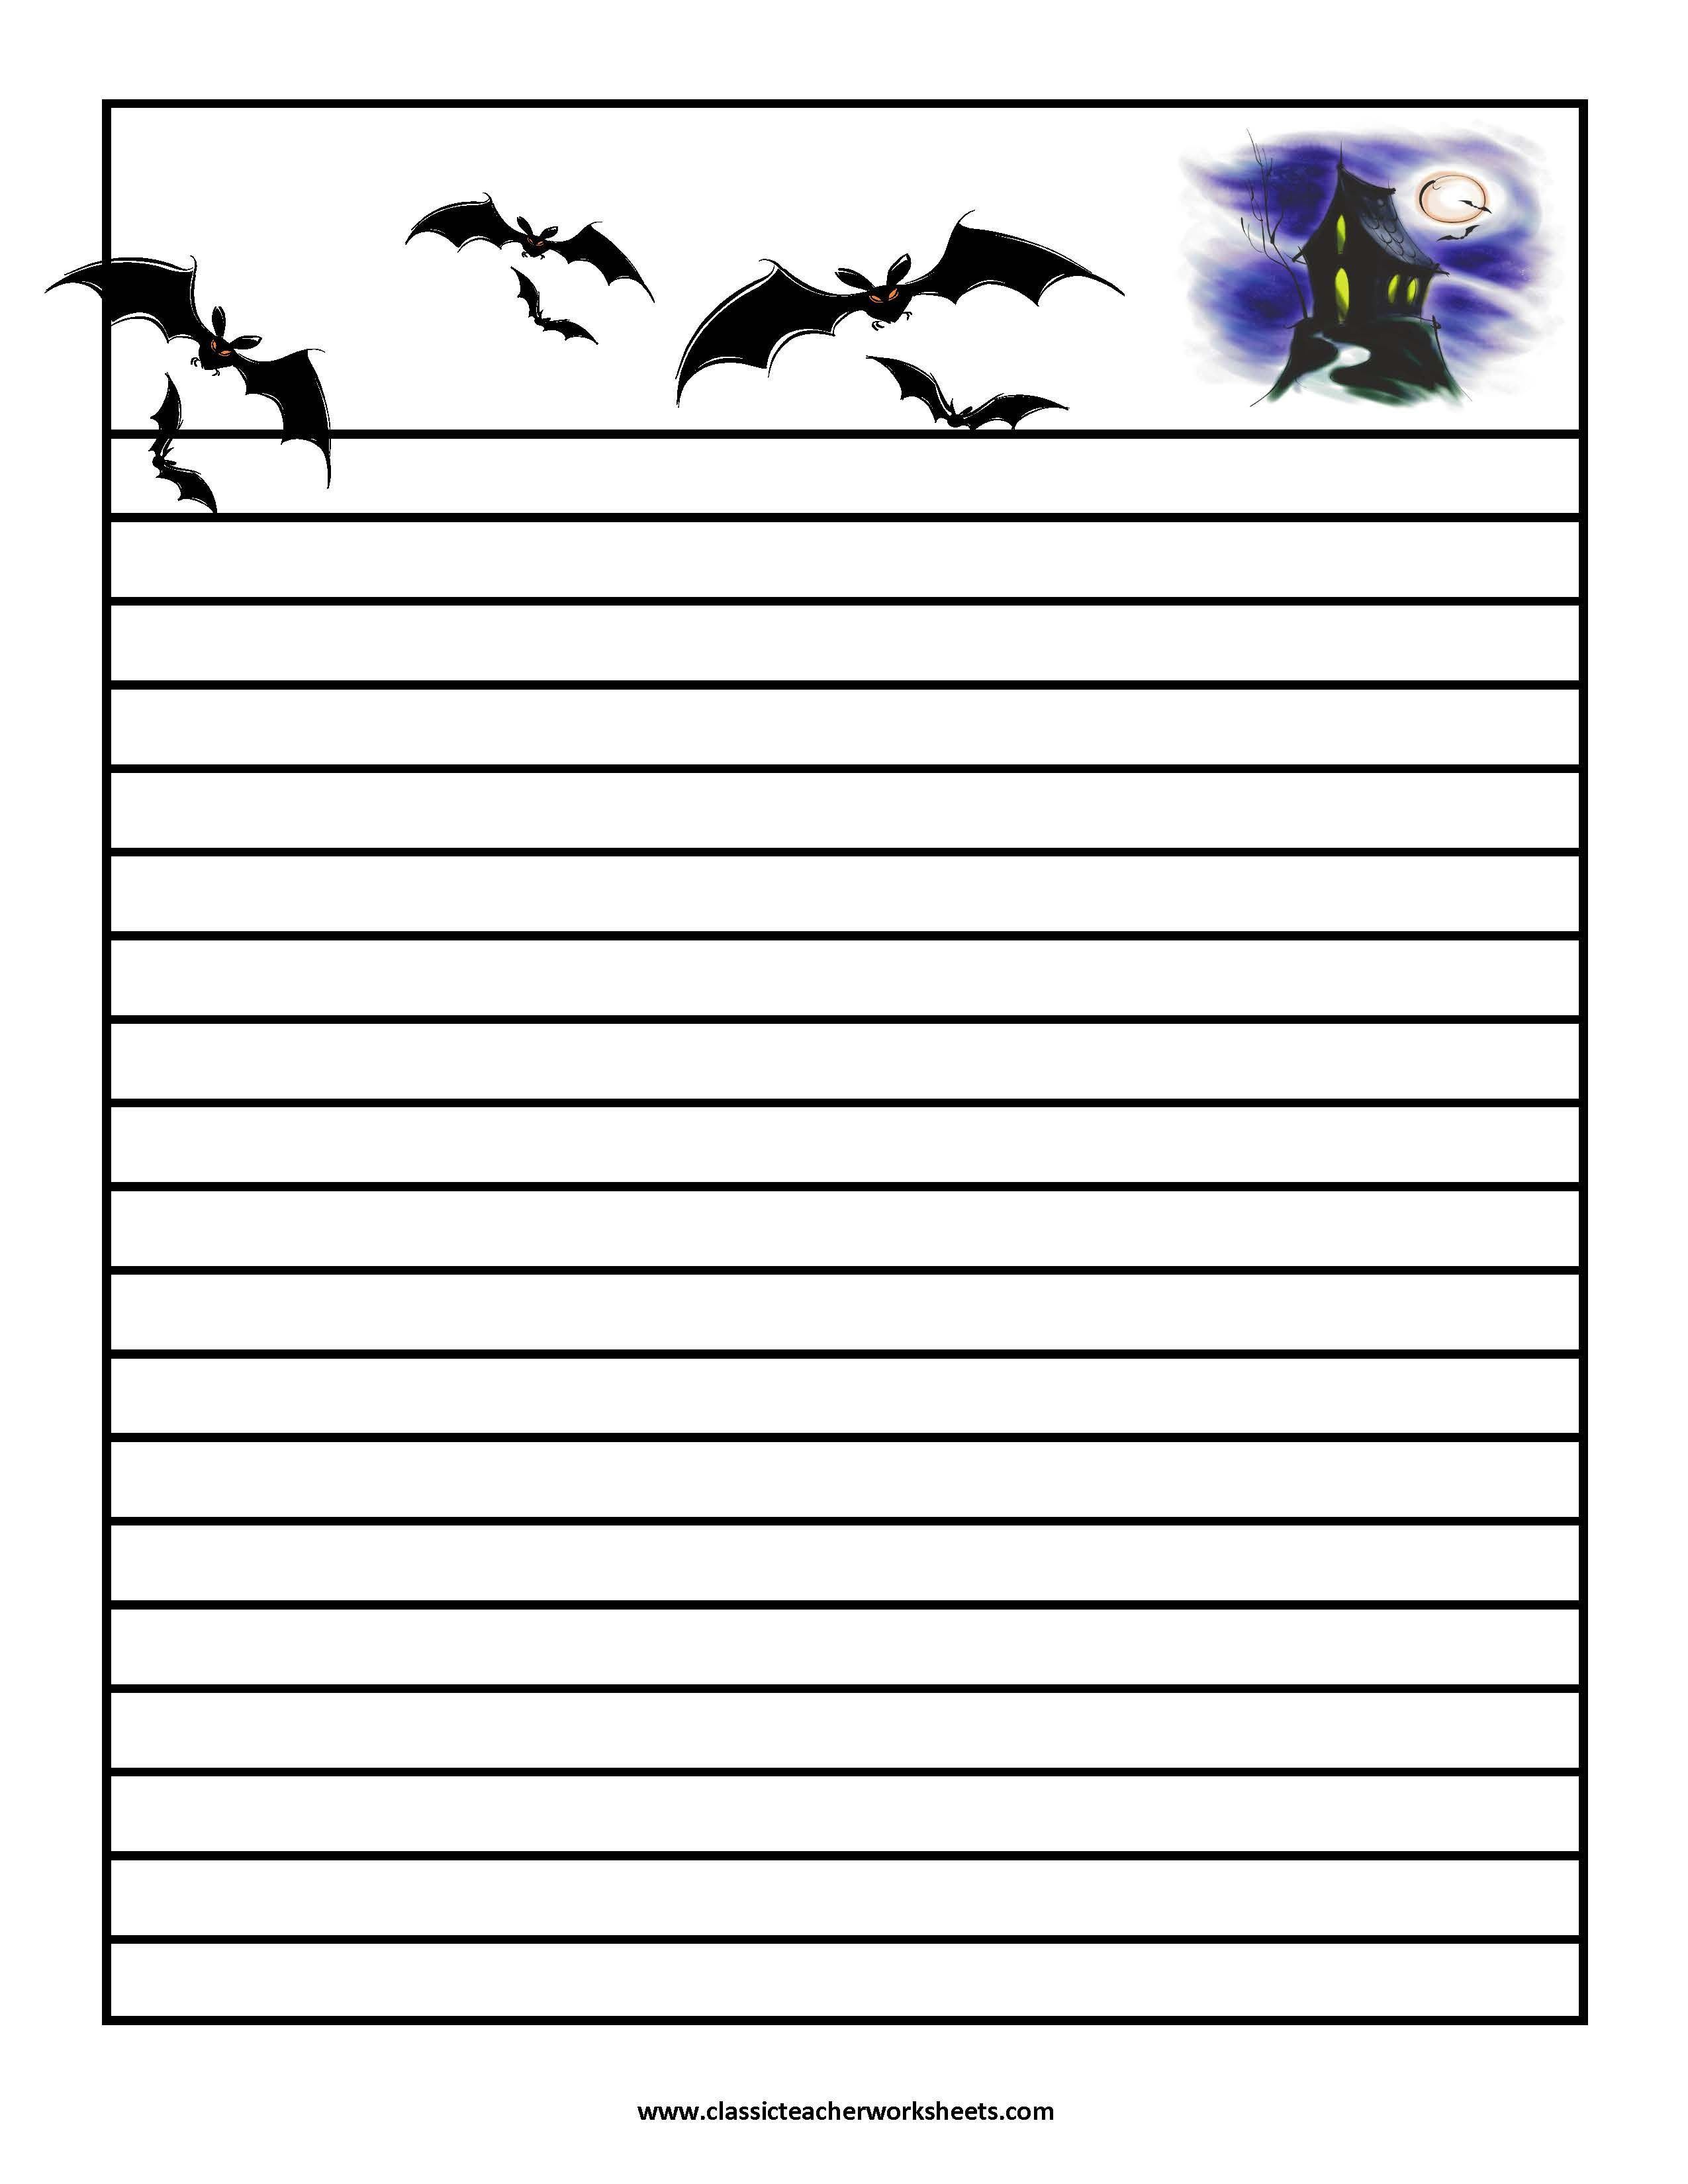 Writing Paper Halloween Haunted House Check Out Our Website Classicteacherworksheets